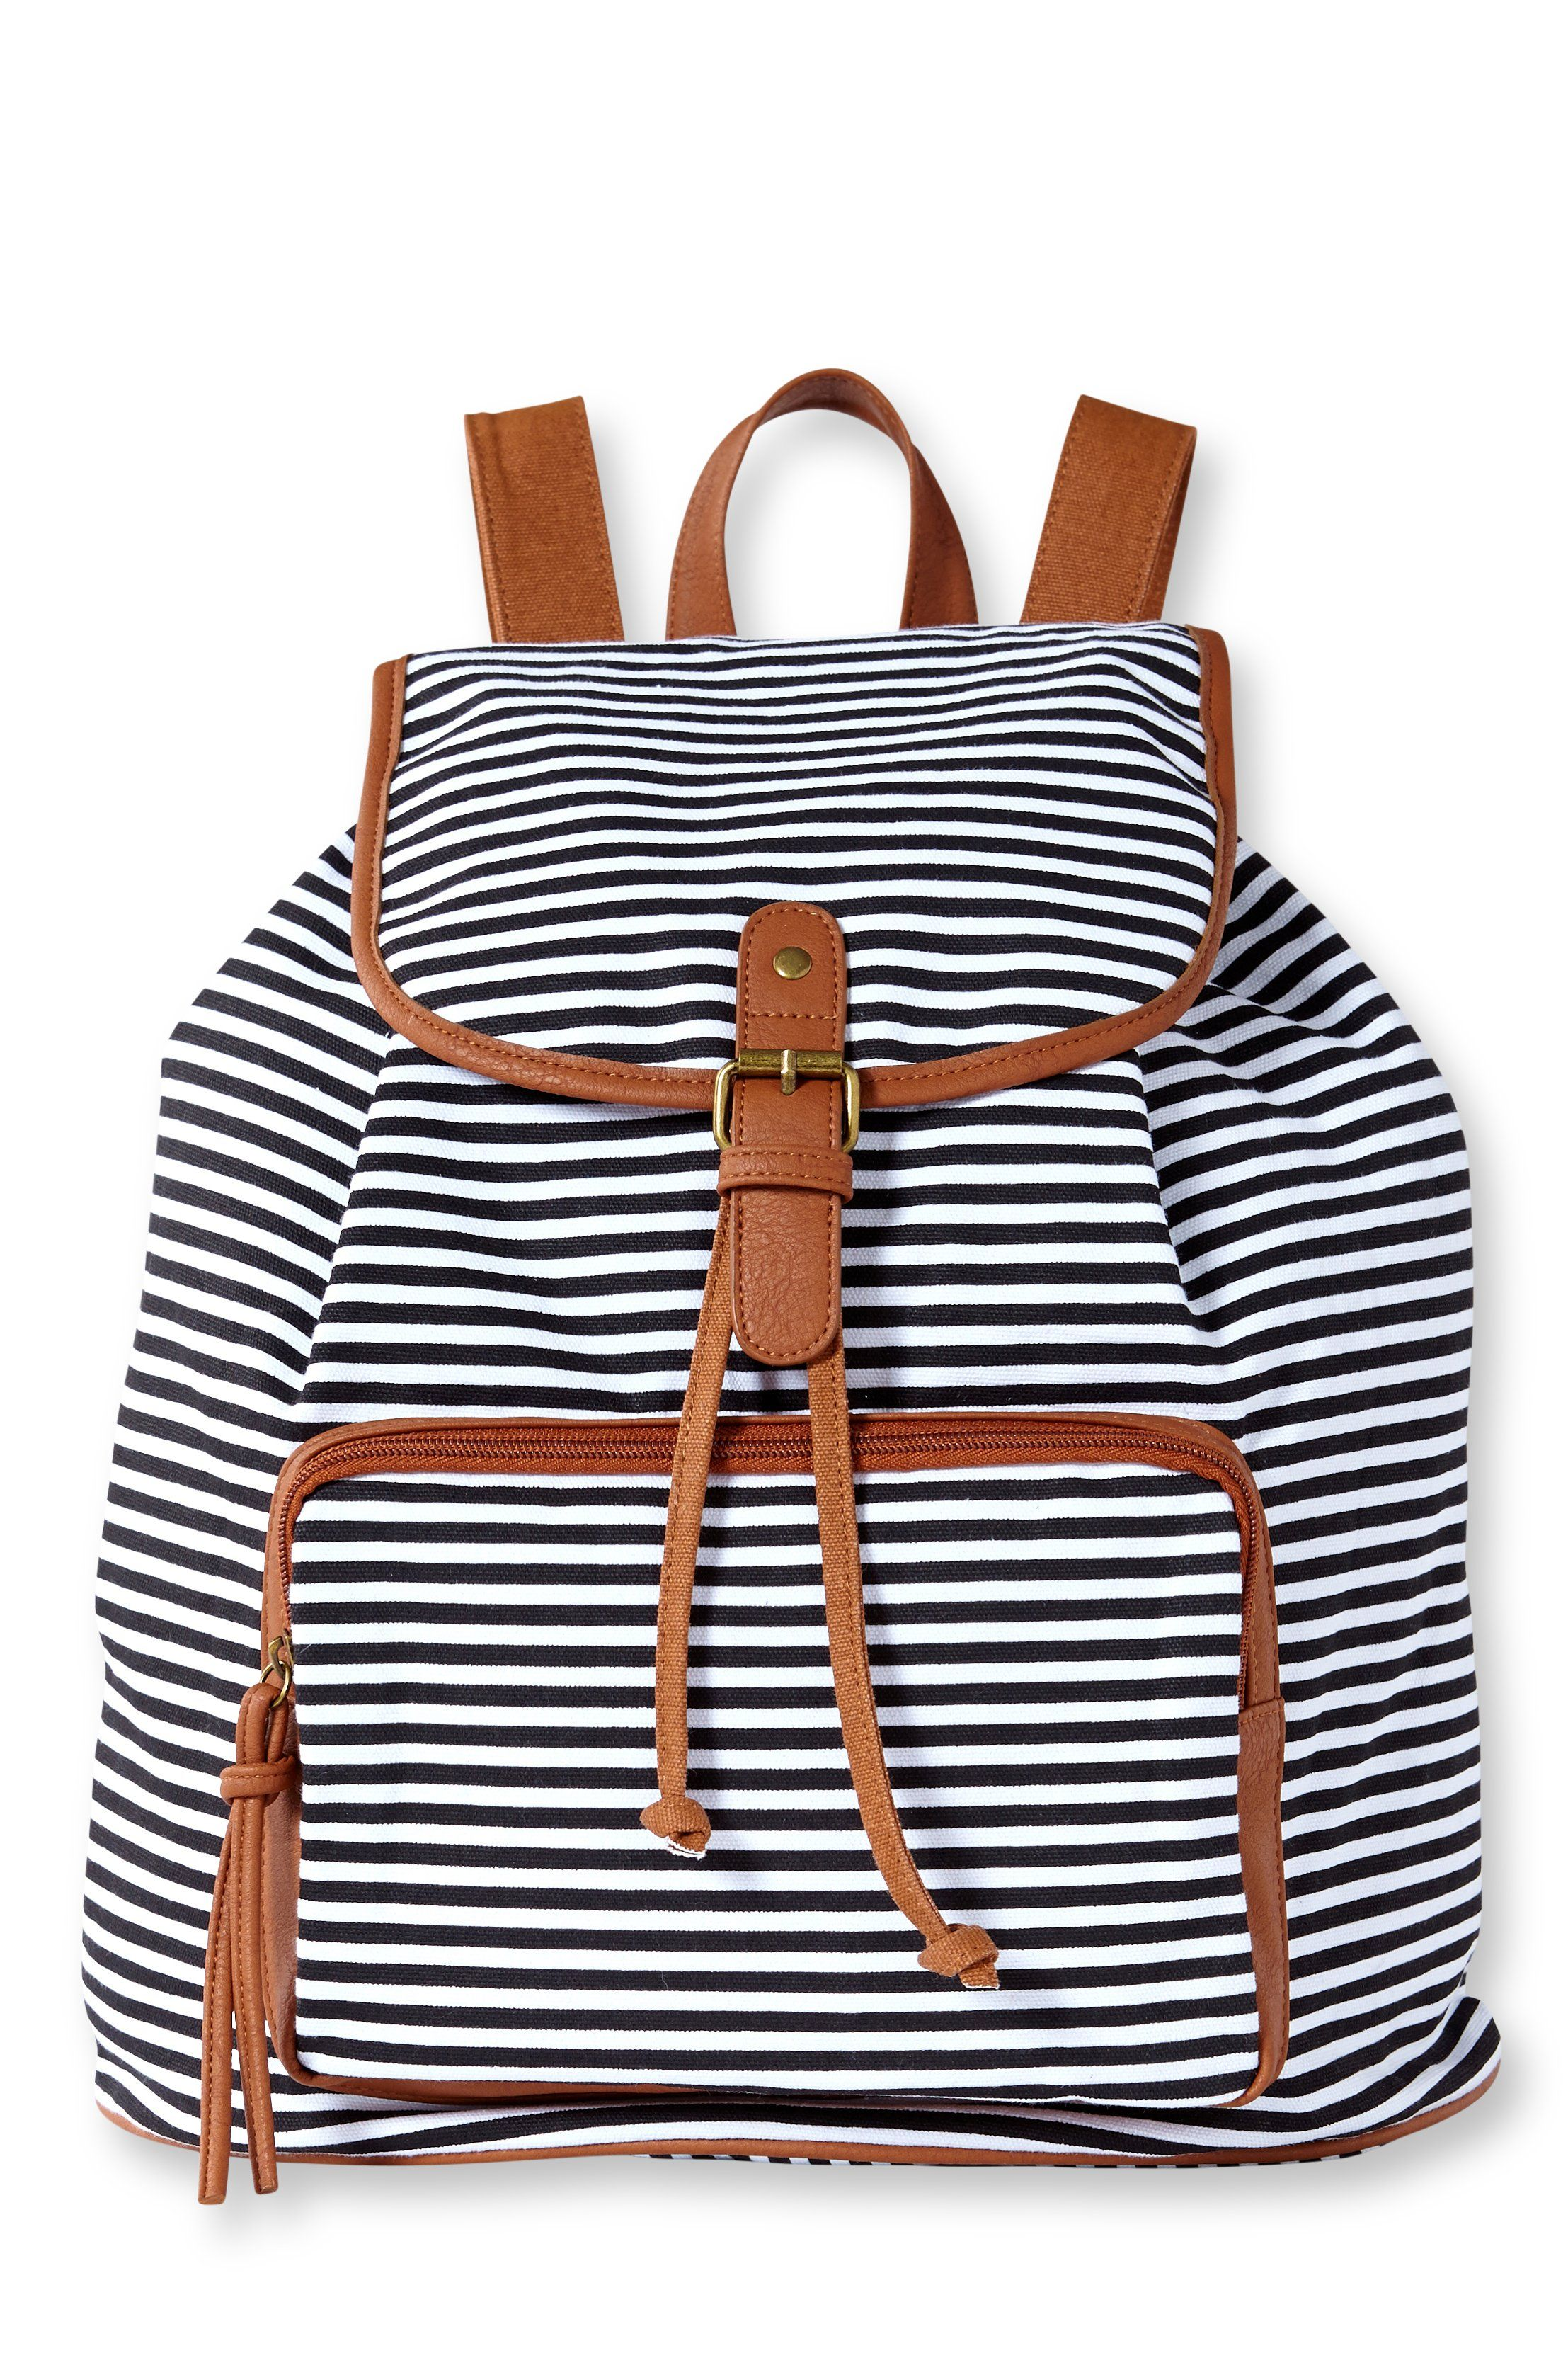 ec141509c0 Retro Navy Stripe Print Fresh Backpack only  34.99 -ByGoods.com. Unisex  Fashionable Canvas Backpack School Bag ...